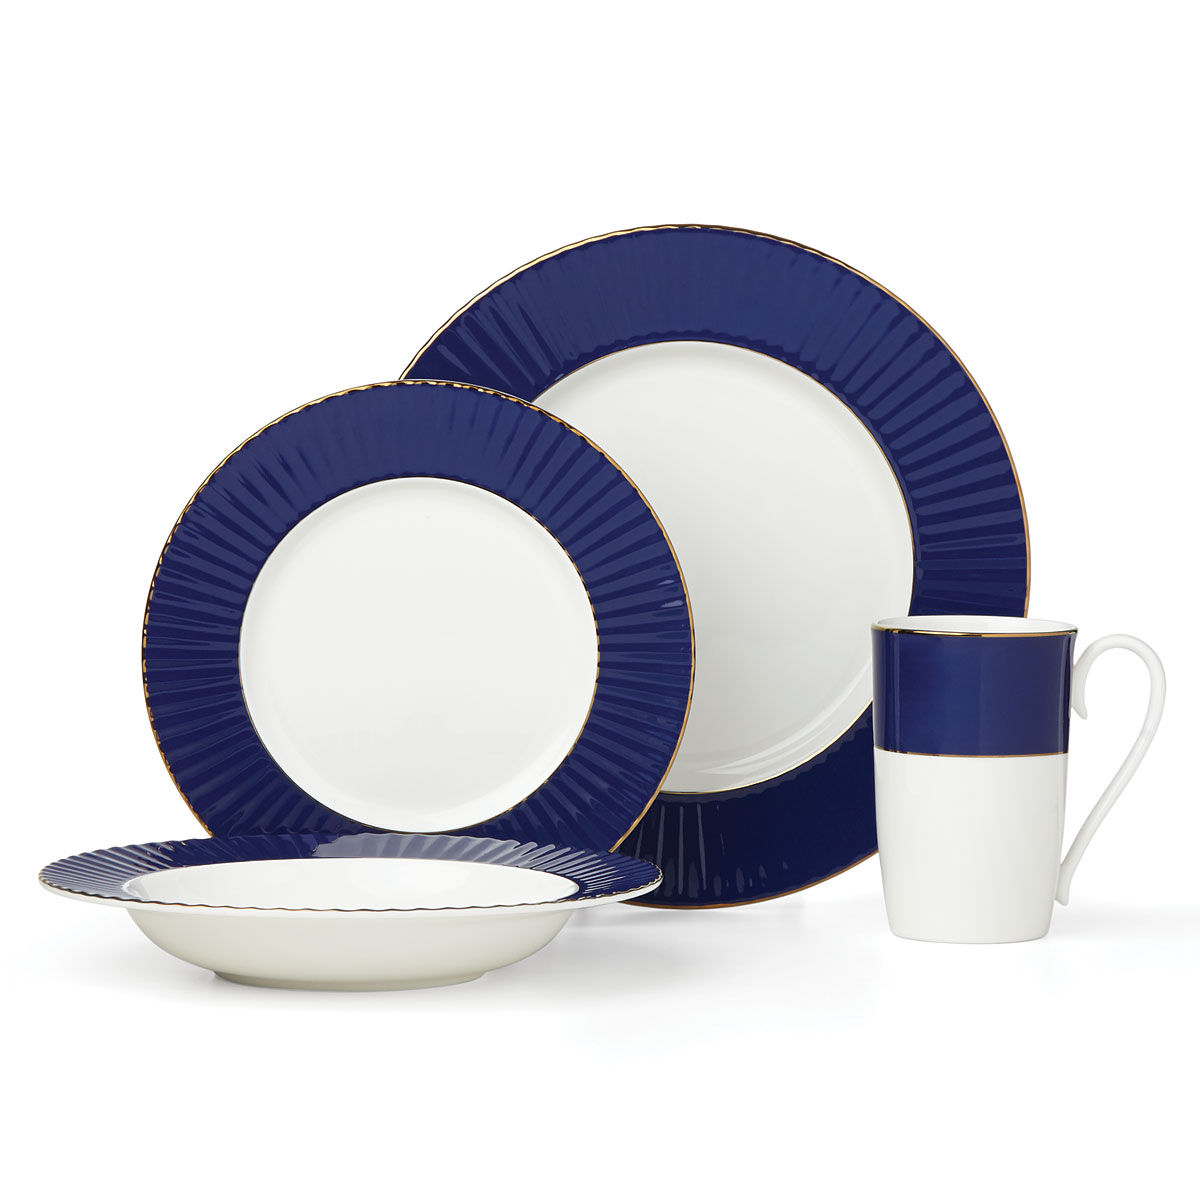 Lenox Pleated Colors Navy Dinnerware 4 Piece Place Setting